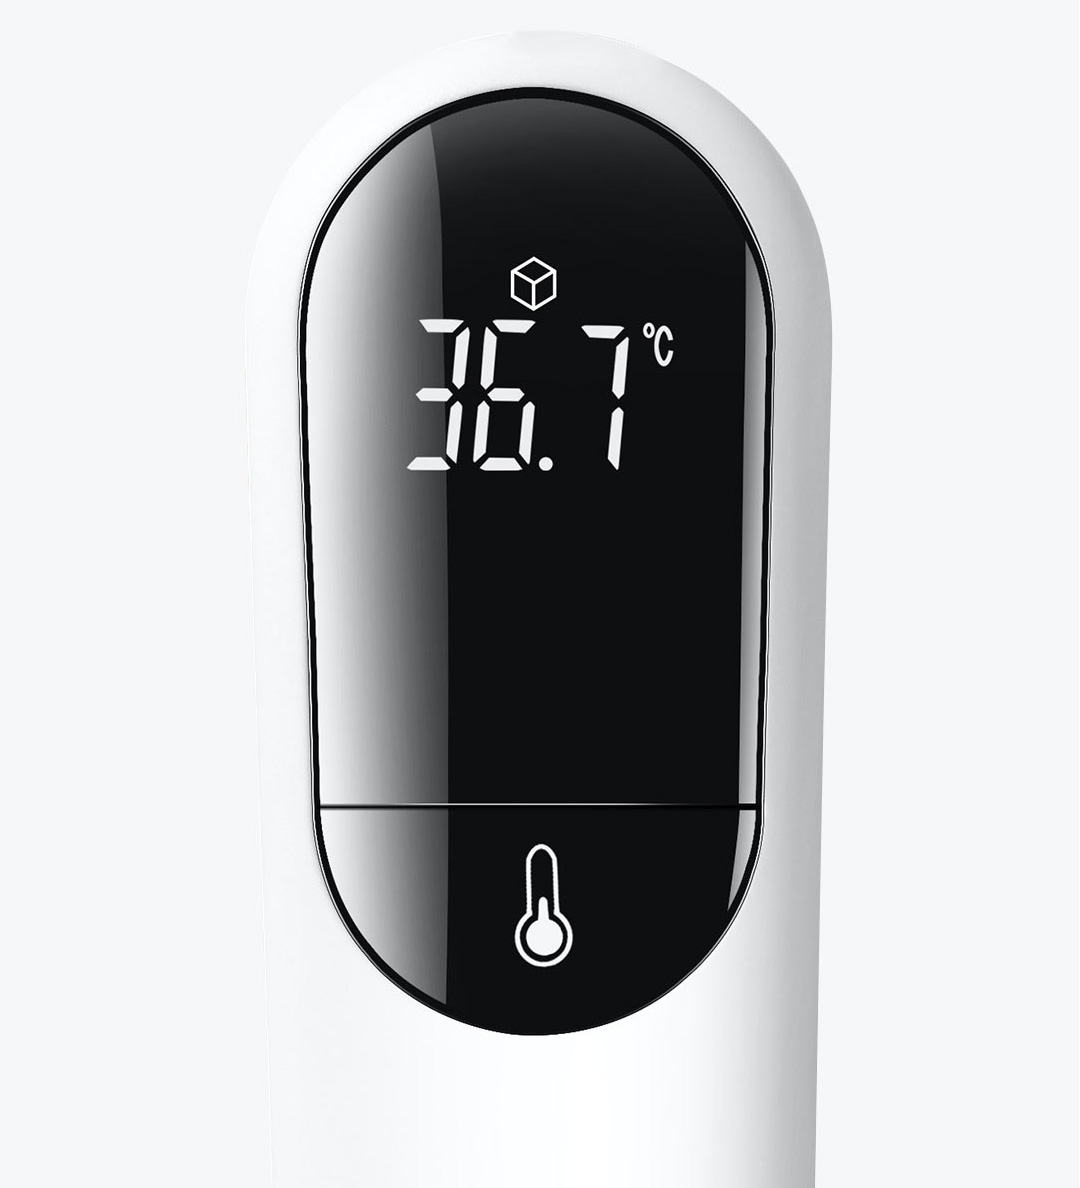 Xiaomi Berrcom Non-Contact Digital Infrared Thermometer JXB-305